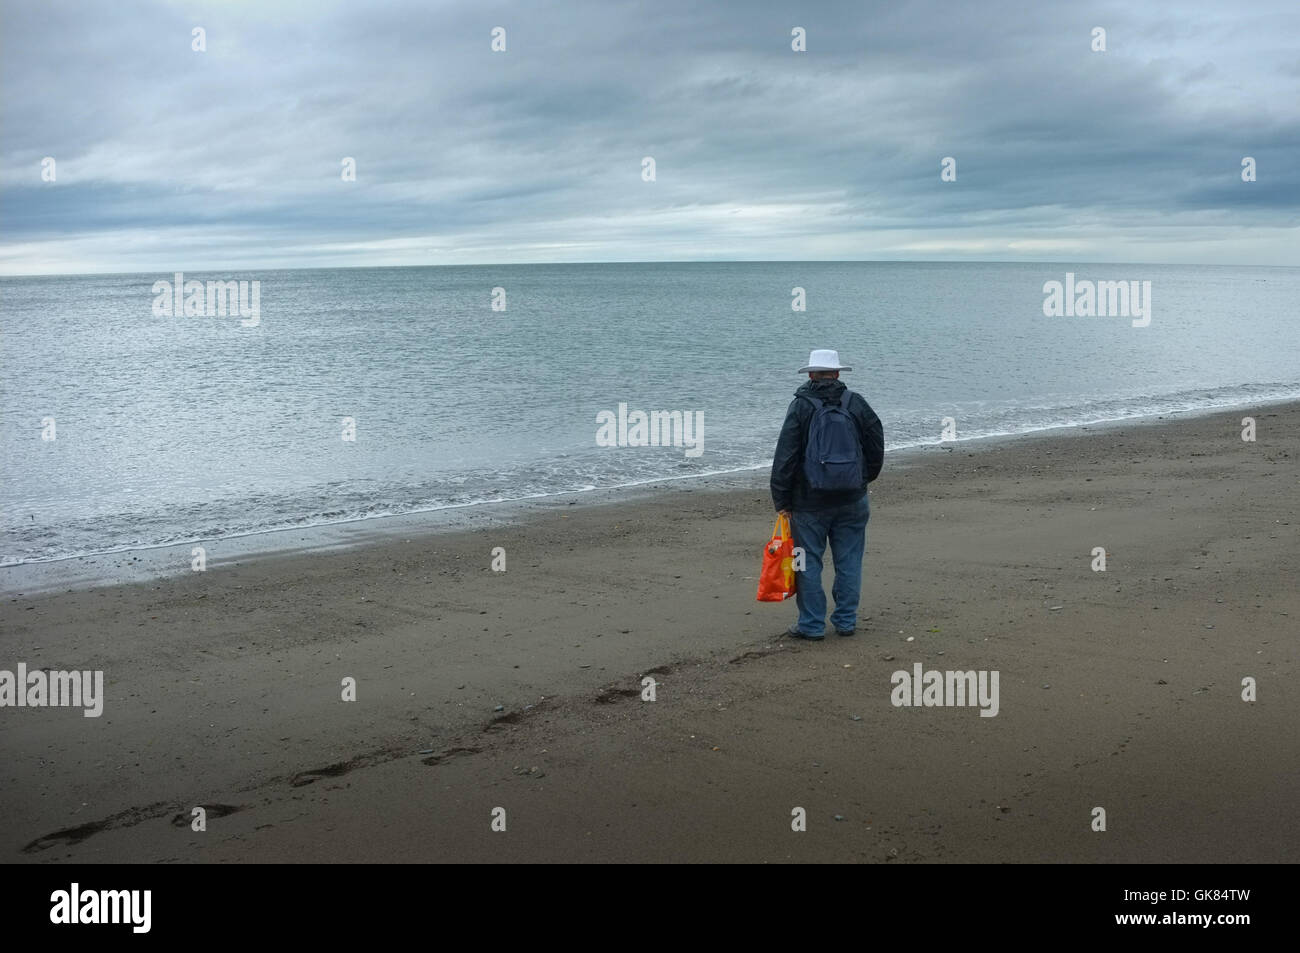 Aberystwyth, Wales, UK. 19th August, 2016.  UK weather: A brave tourist has the beach to himself on a cold grey - Stock Image